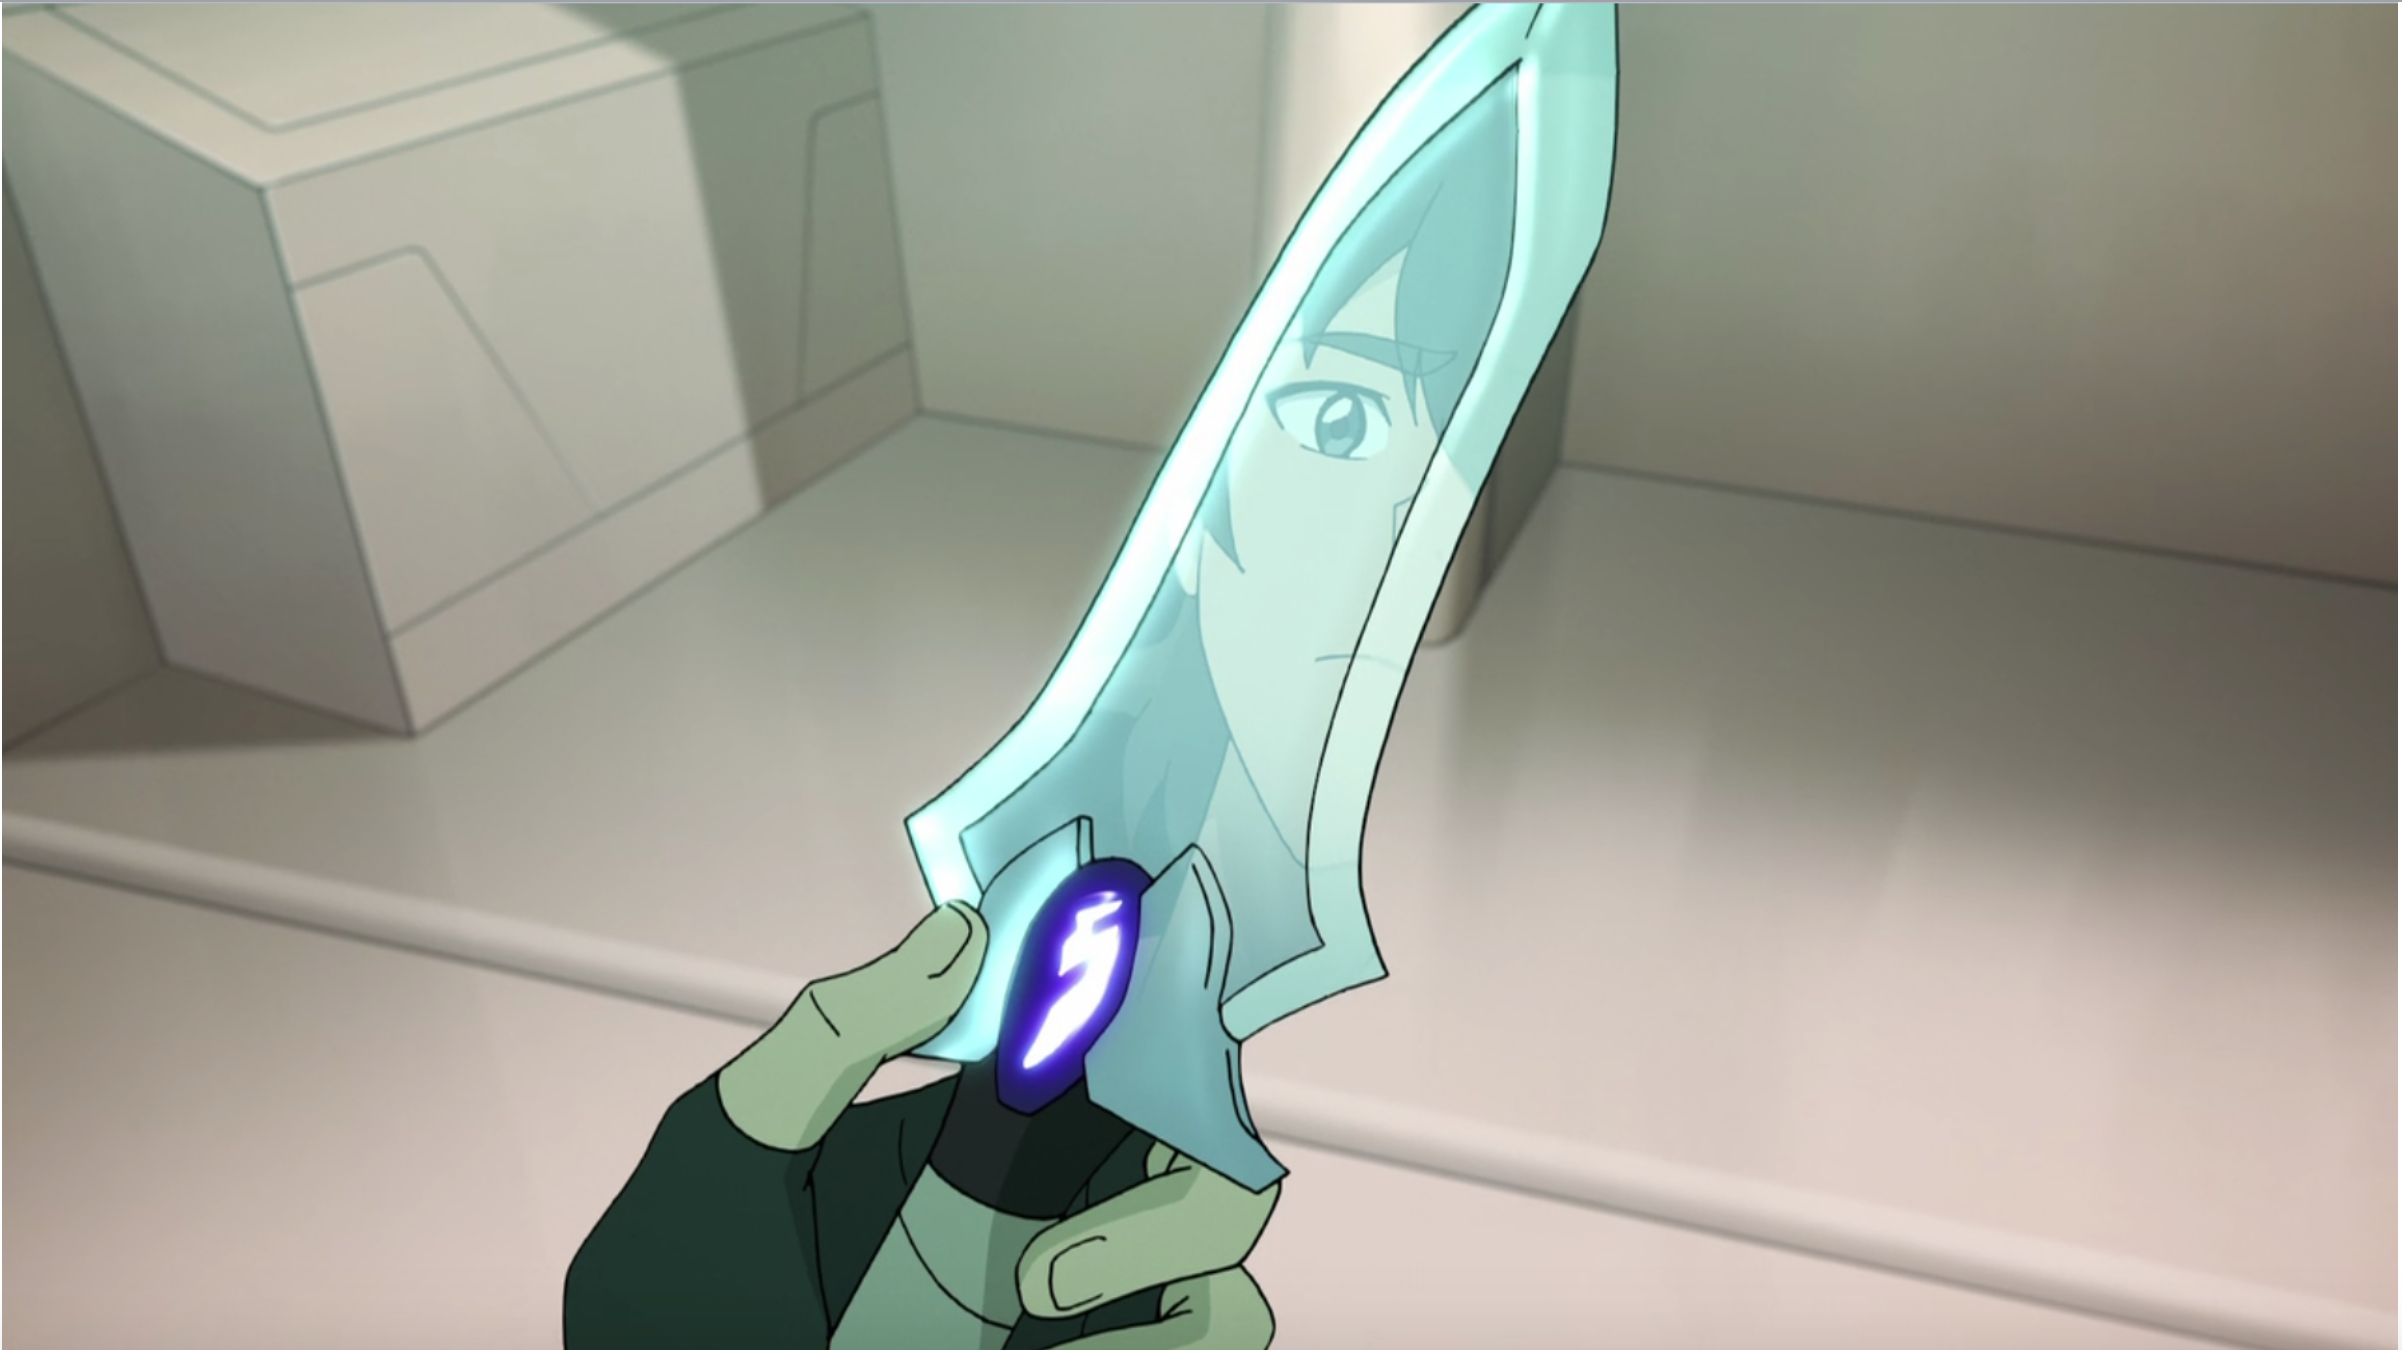 Keith's reflection on his knife blade with the Blade of Marmora